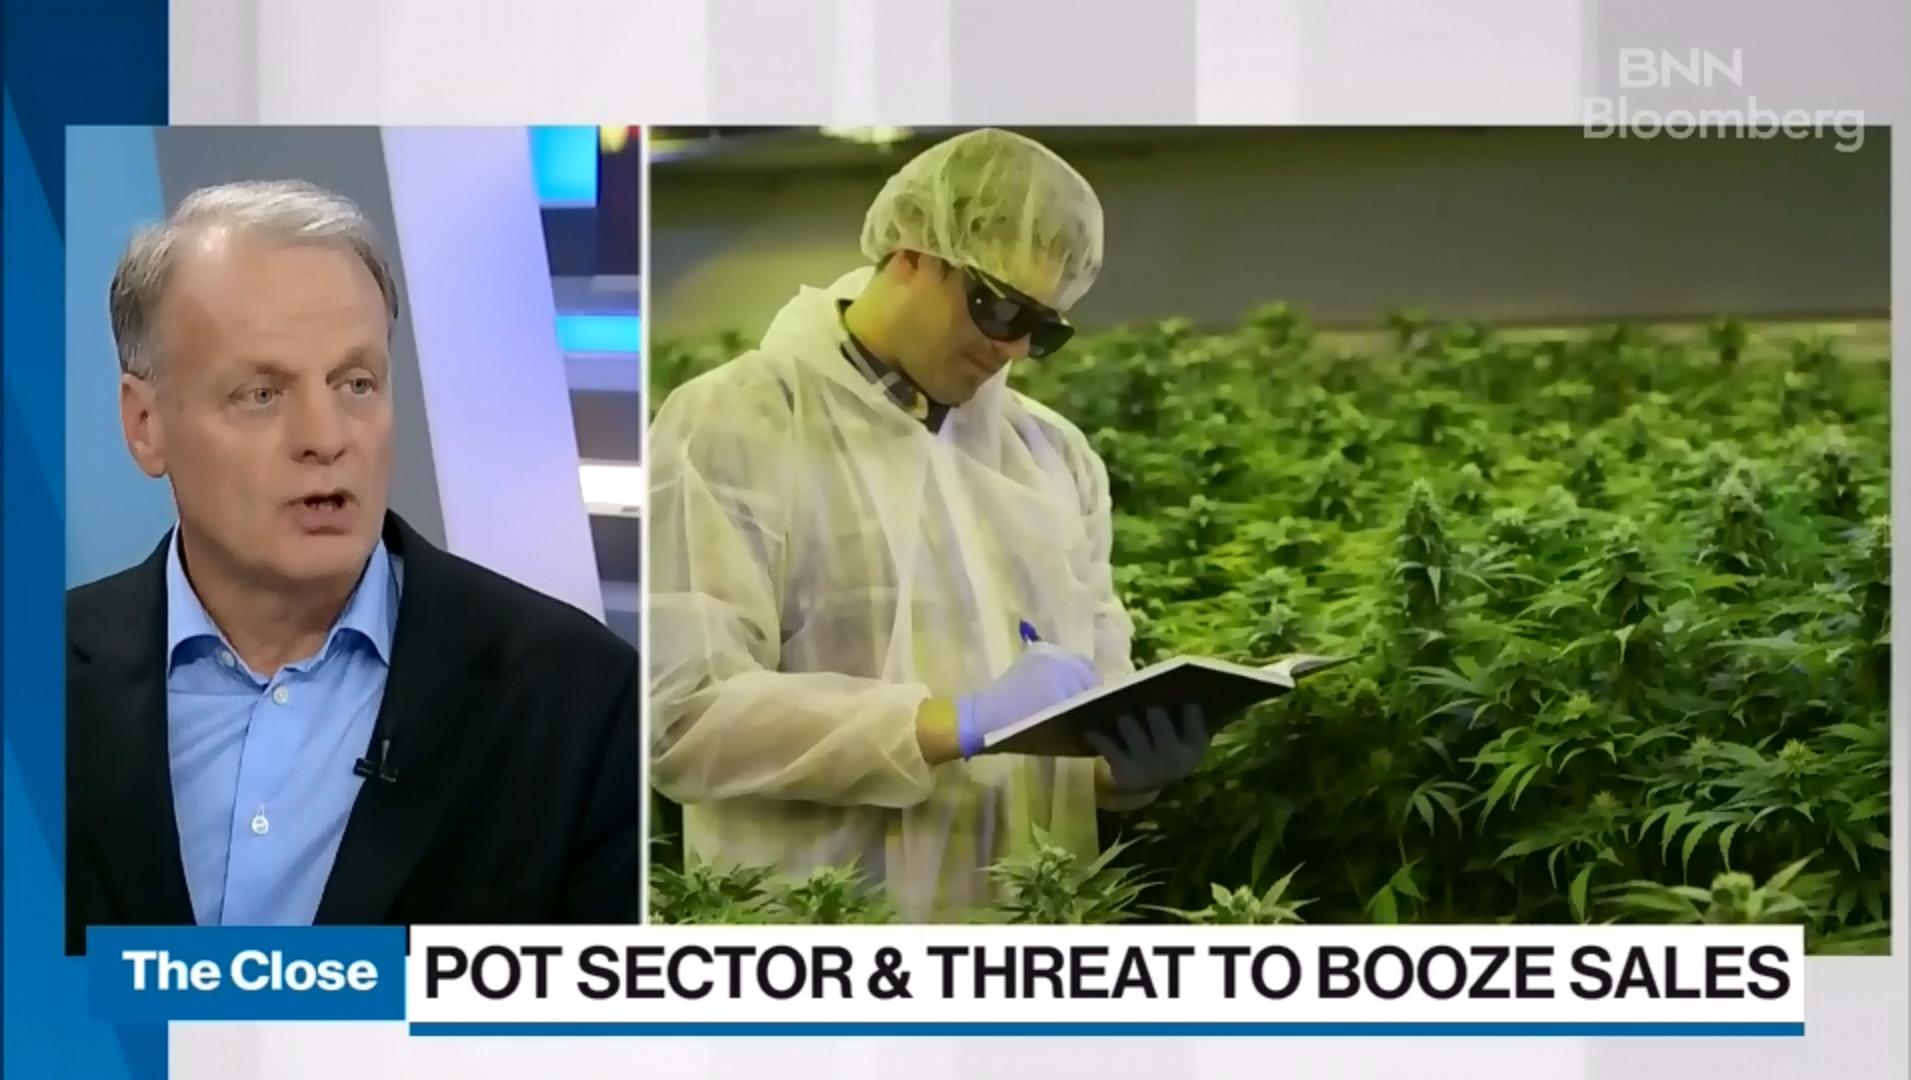 AB InBev, Pepsi, Coca-Cola All Likely Eyeing Cannabis: Former Alcohol Industry Exec